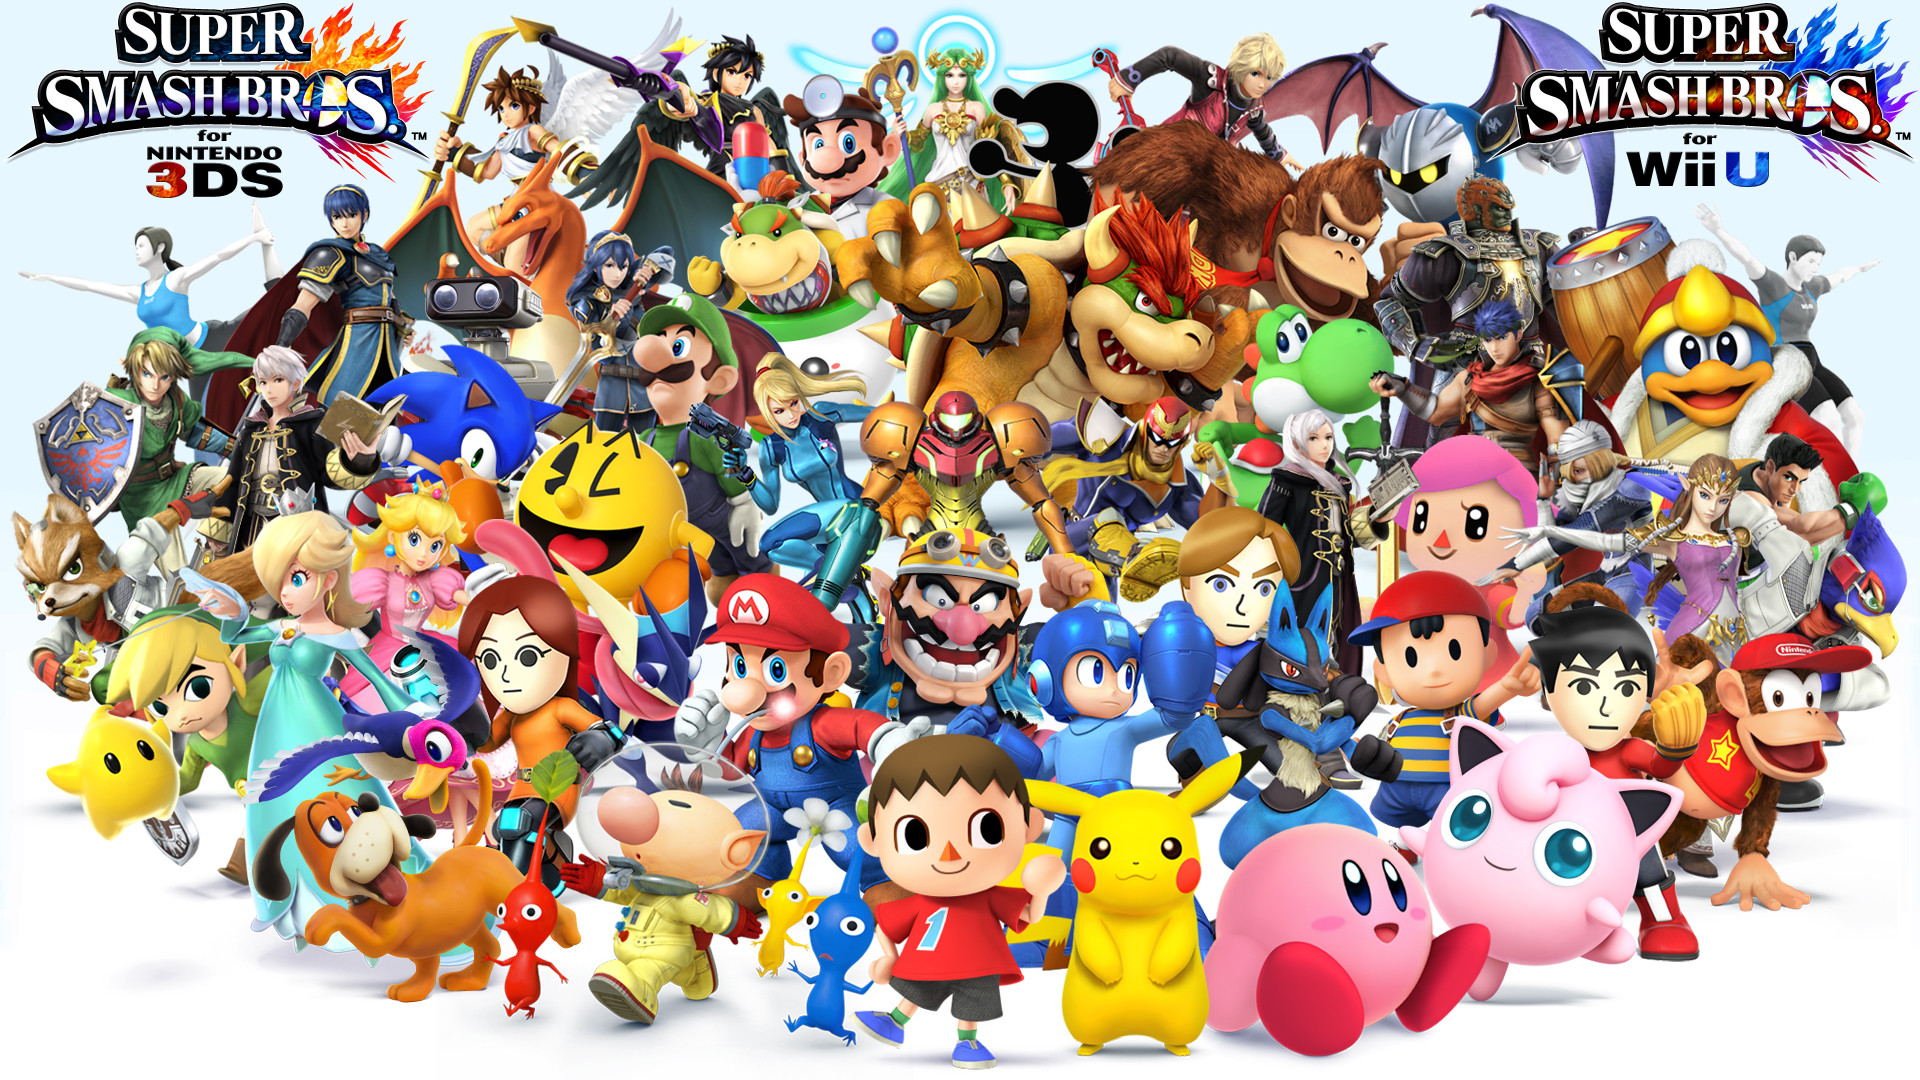 Res: 1920x1080, Ssb wallpaper all characters 1 important notes by thelimomon-d6m3ym4.png.jpg